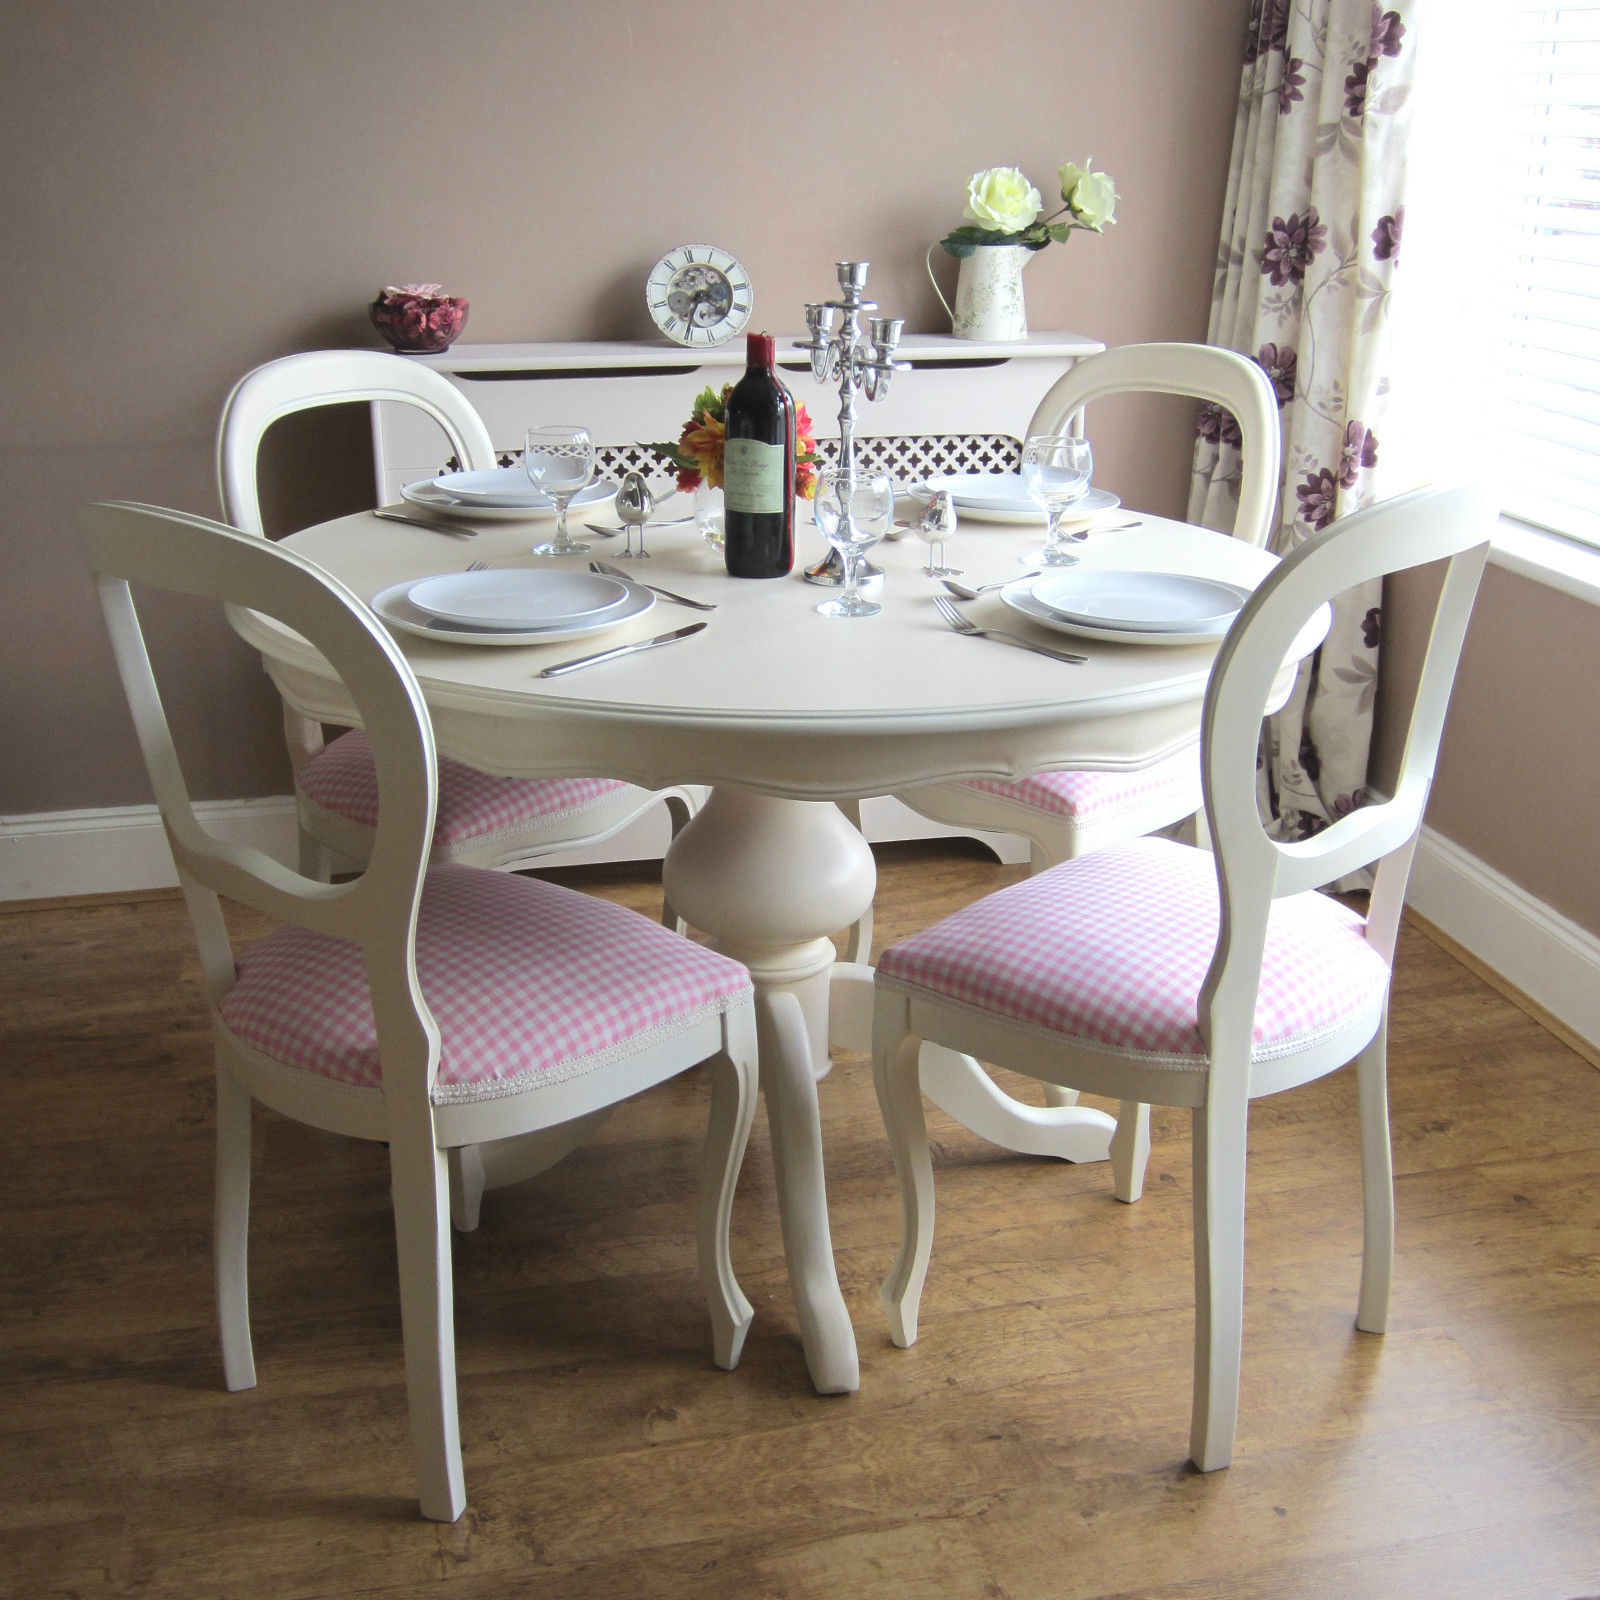 Round Kitchen Tables: Beautiful White Round Kitchen Table And Chairs